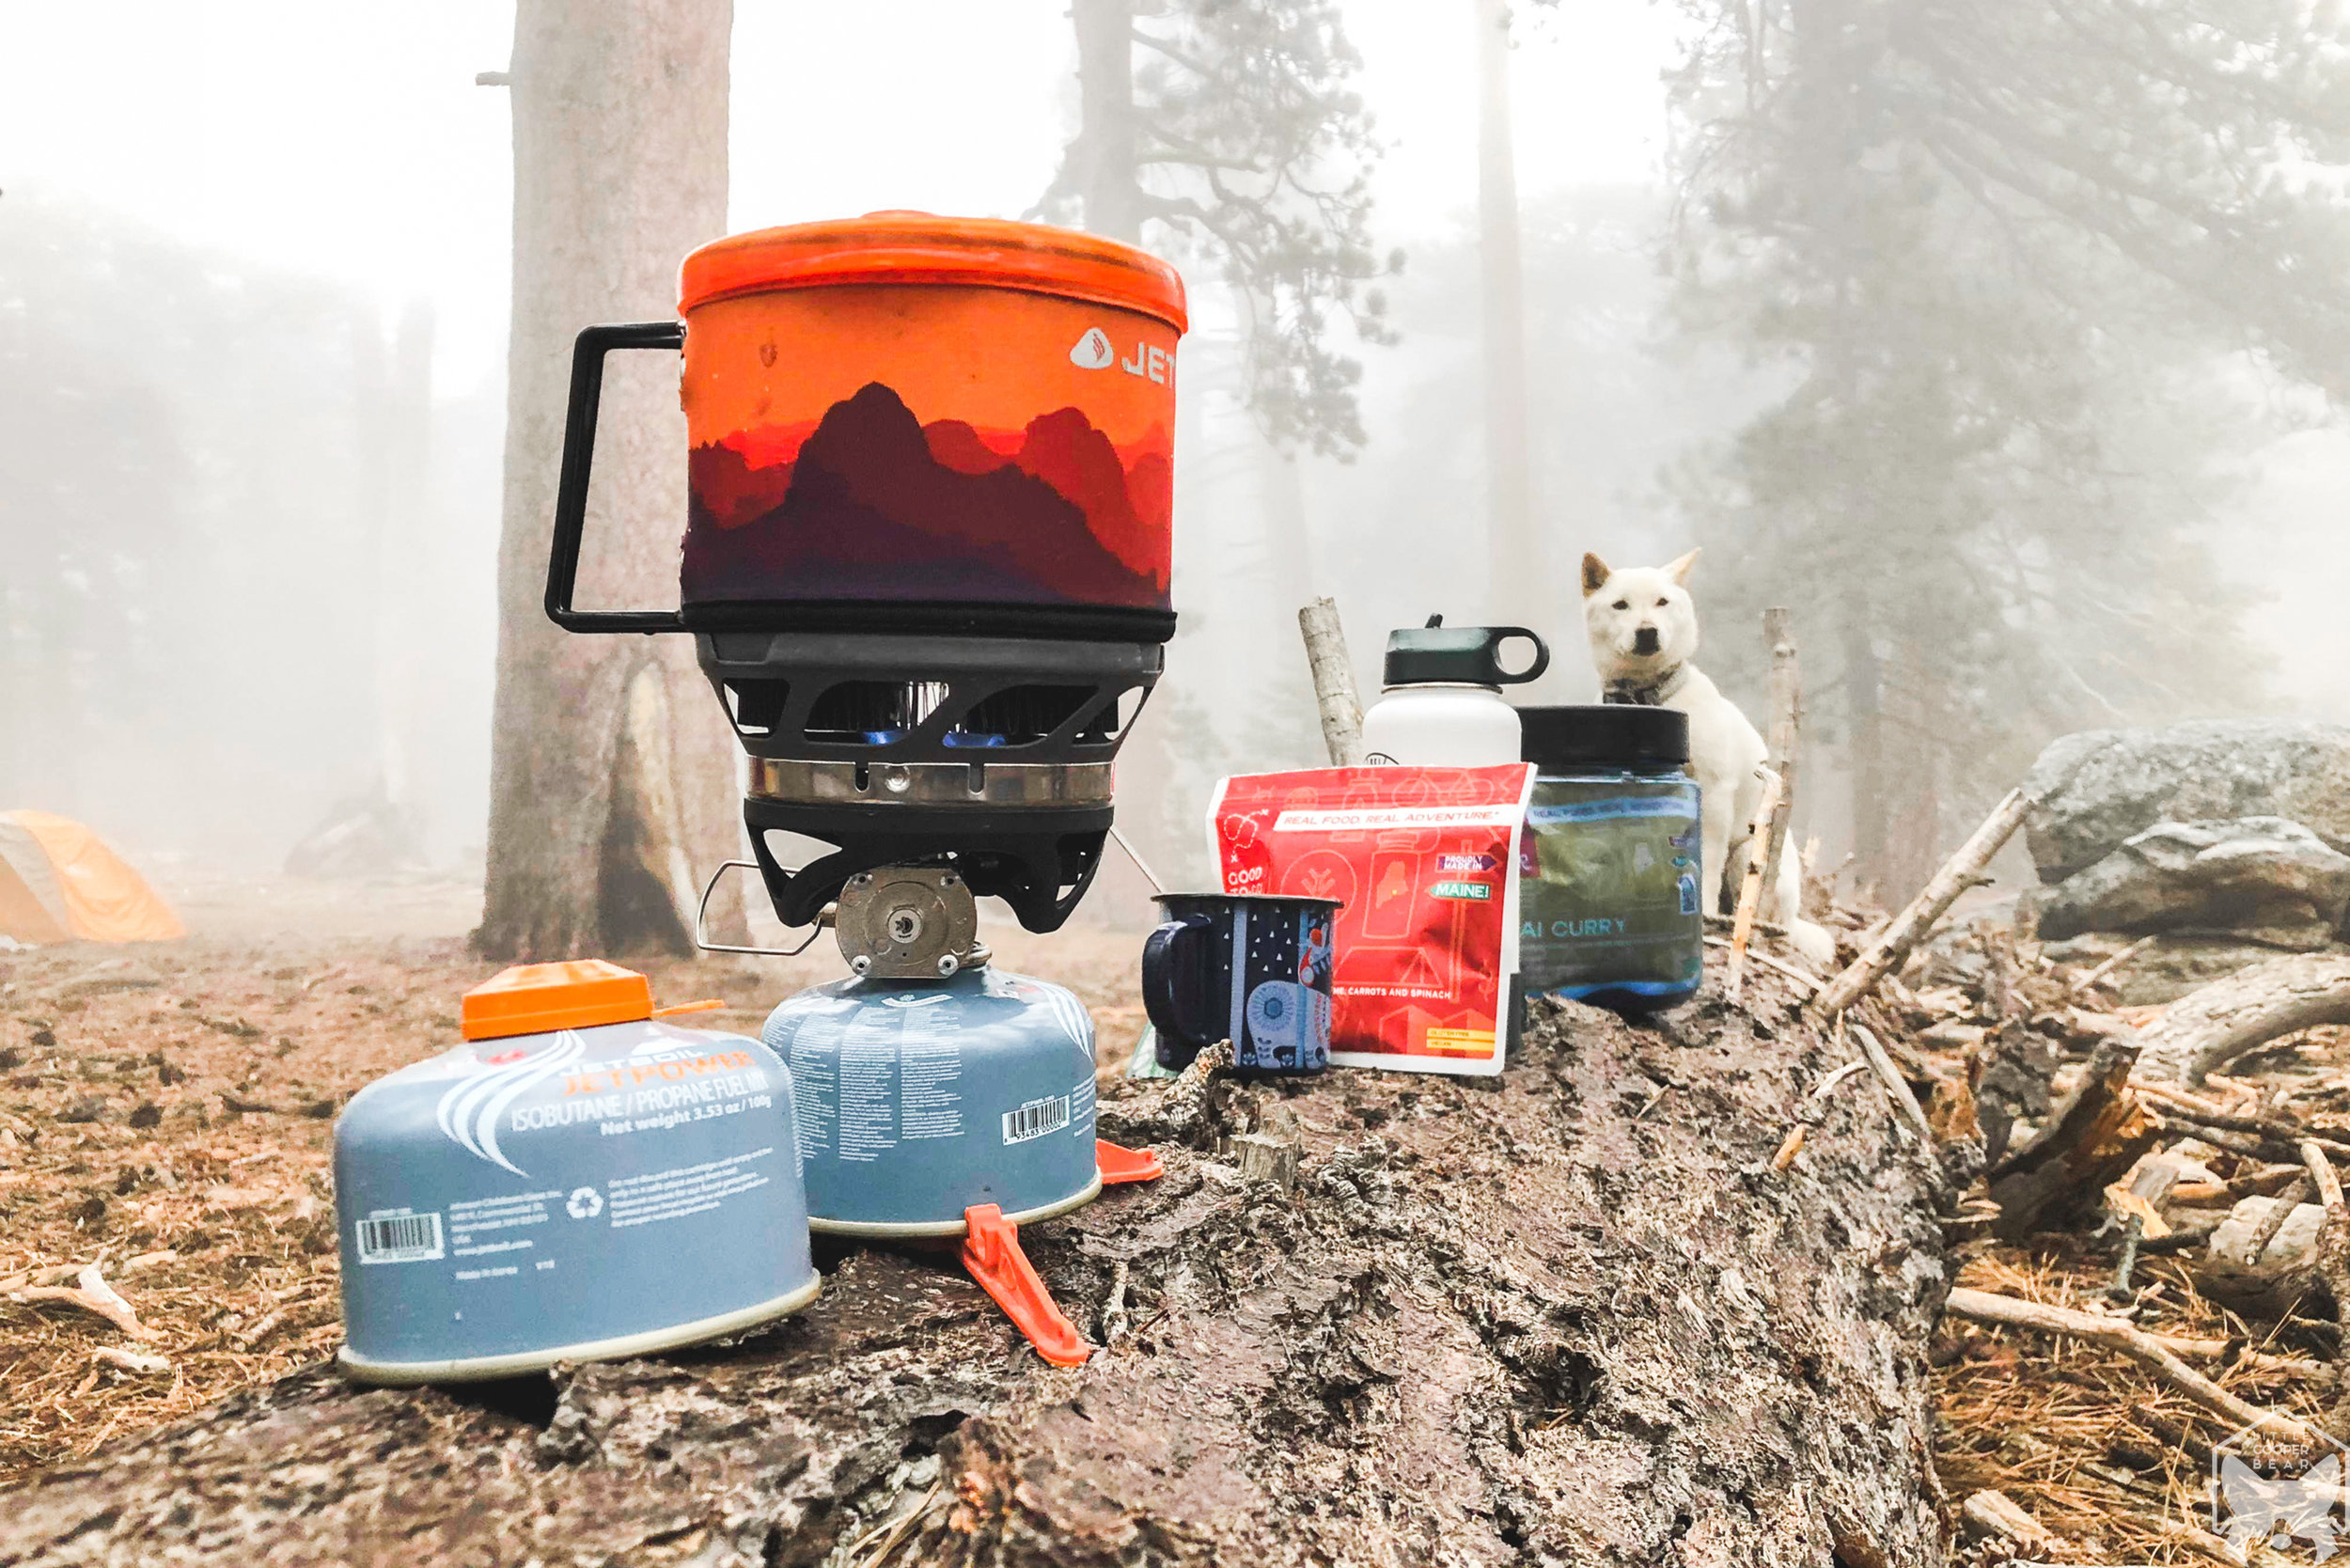 Heated up water with a JetBoil as we prepare dinner.